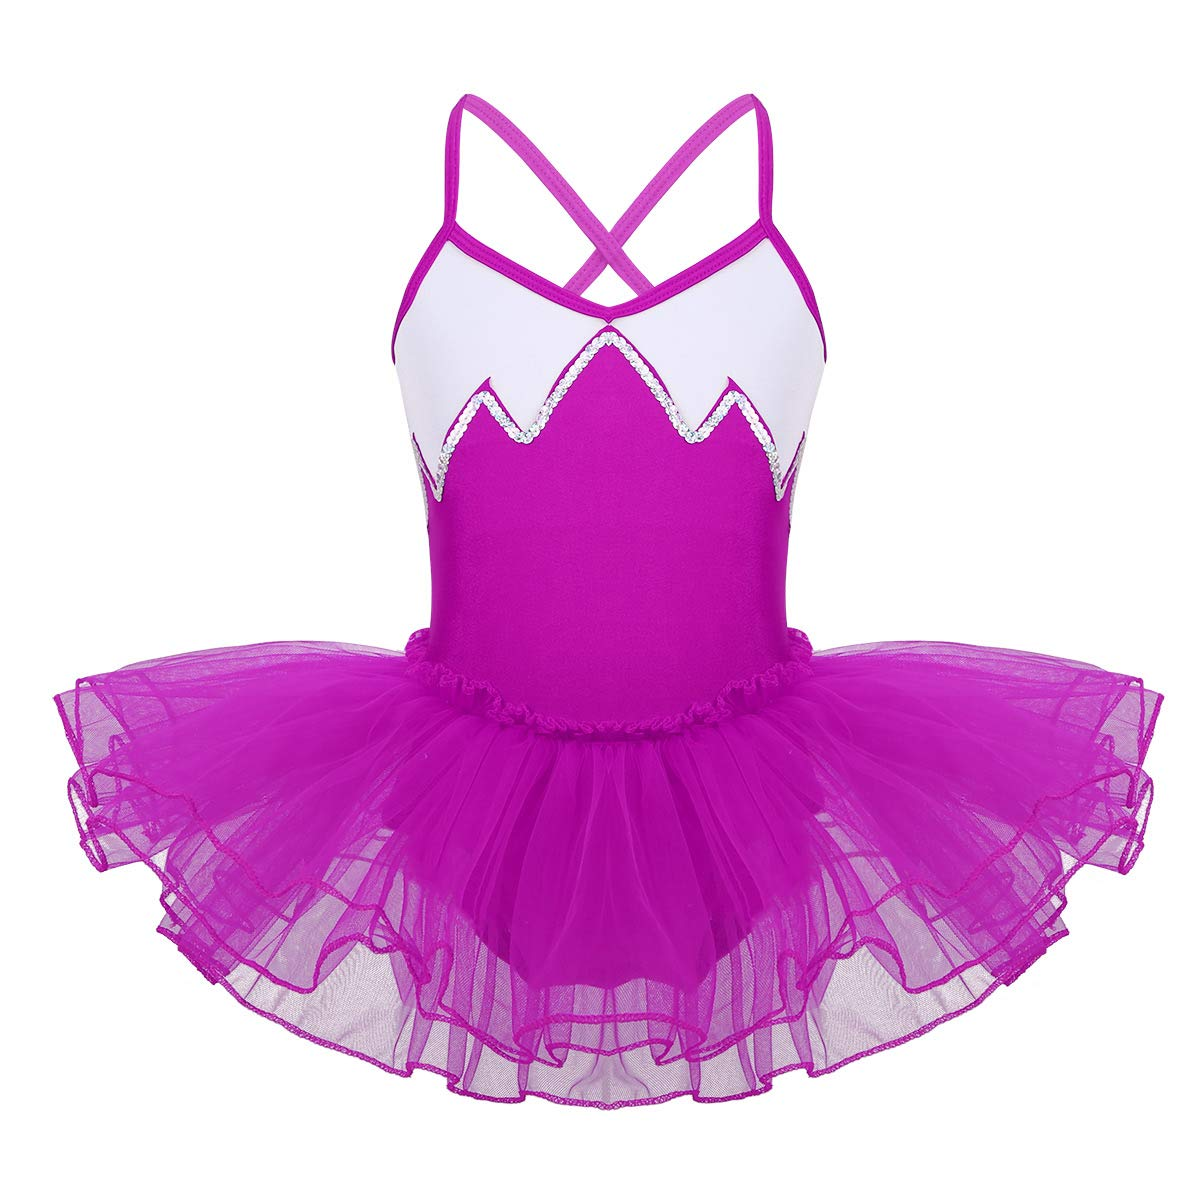 iiniim Girls Kids Princess Ballet Dance Tutu Dress Leotard Skirt Costumes